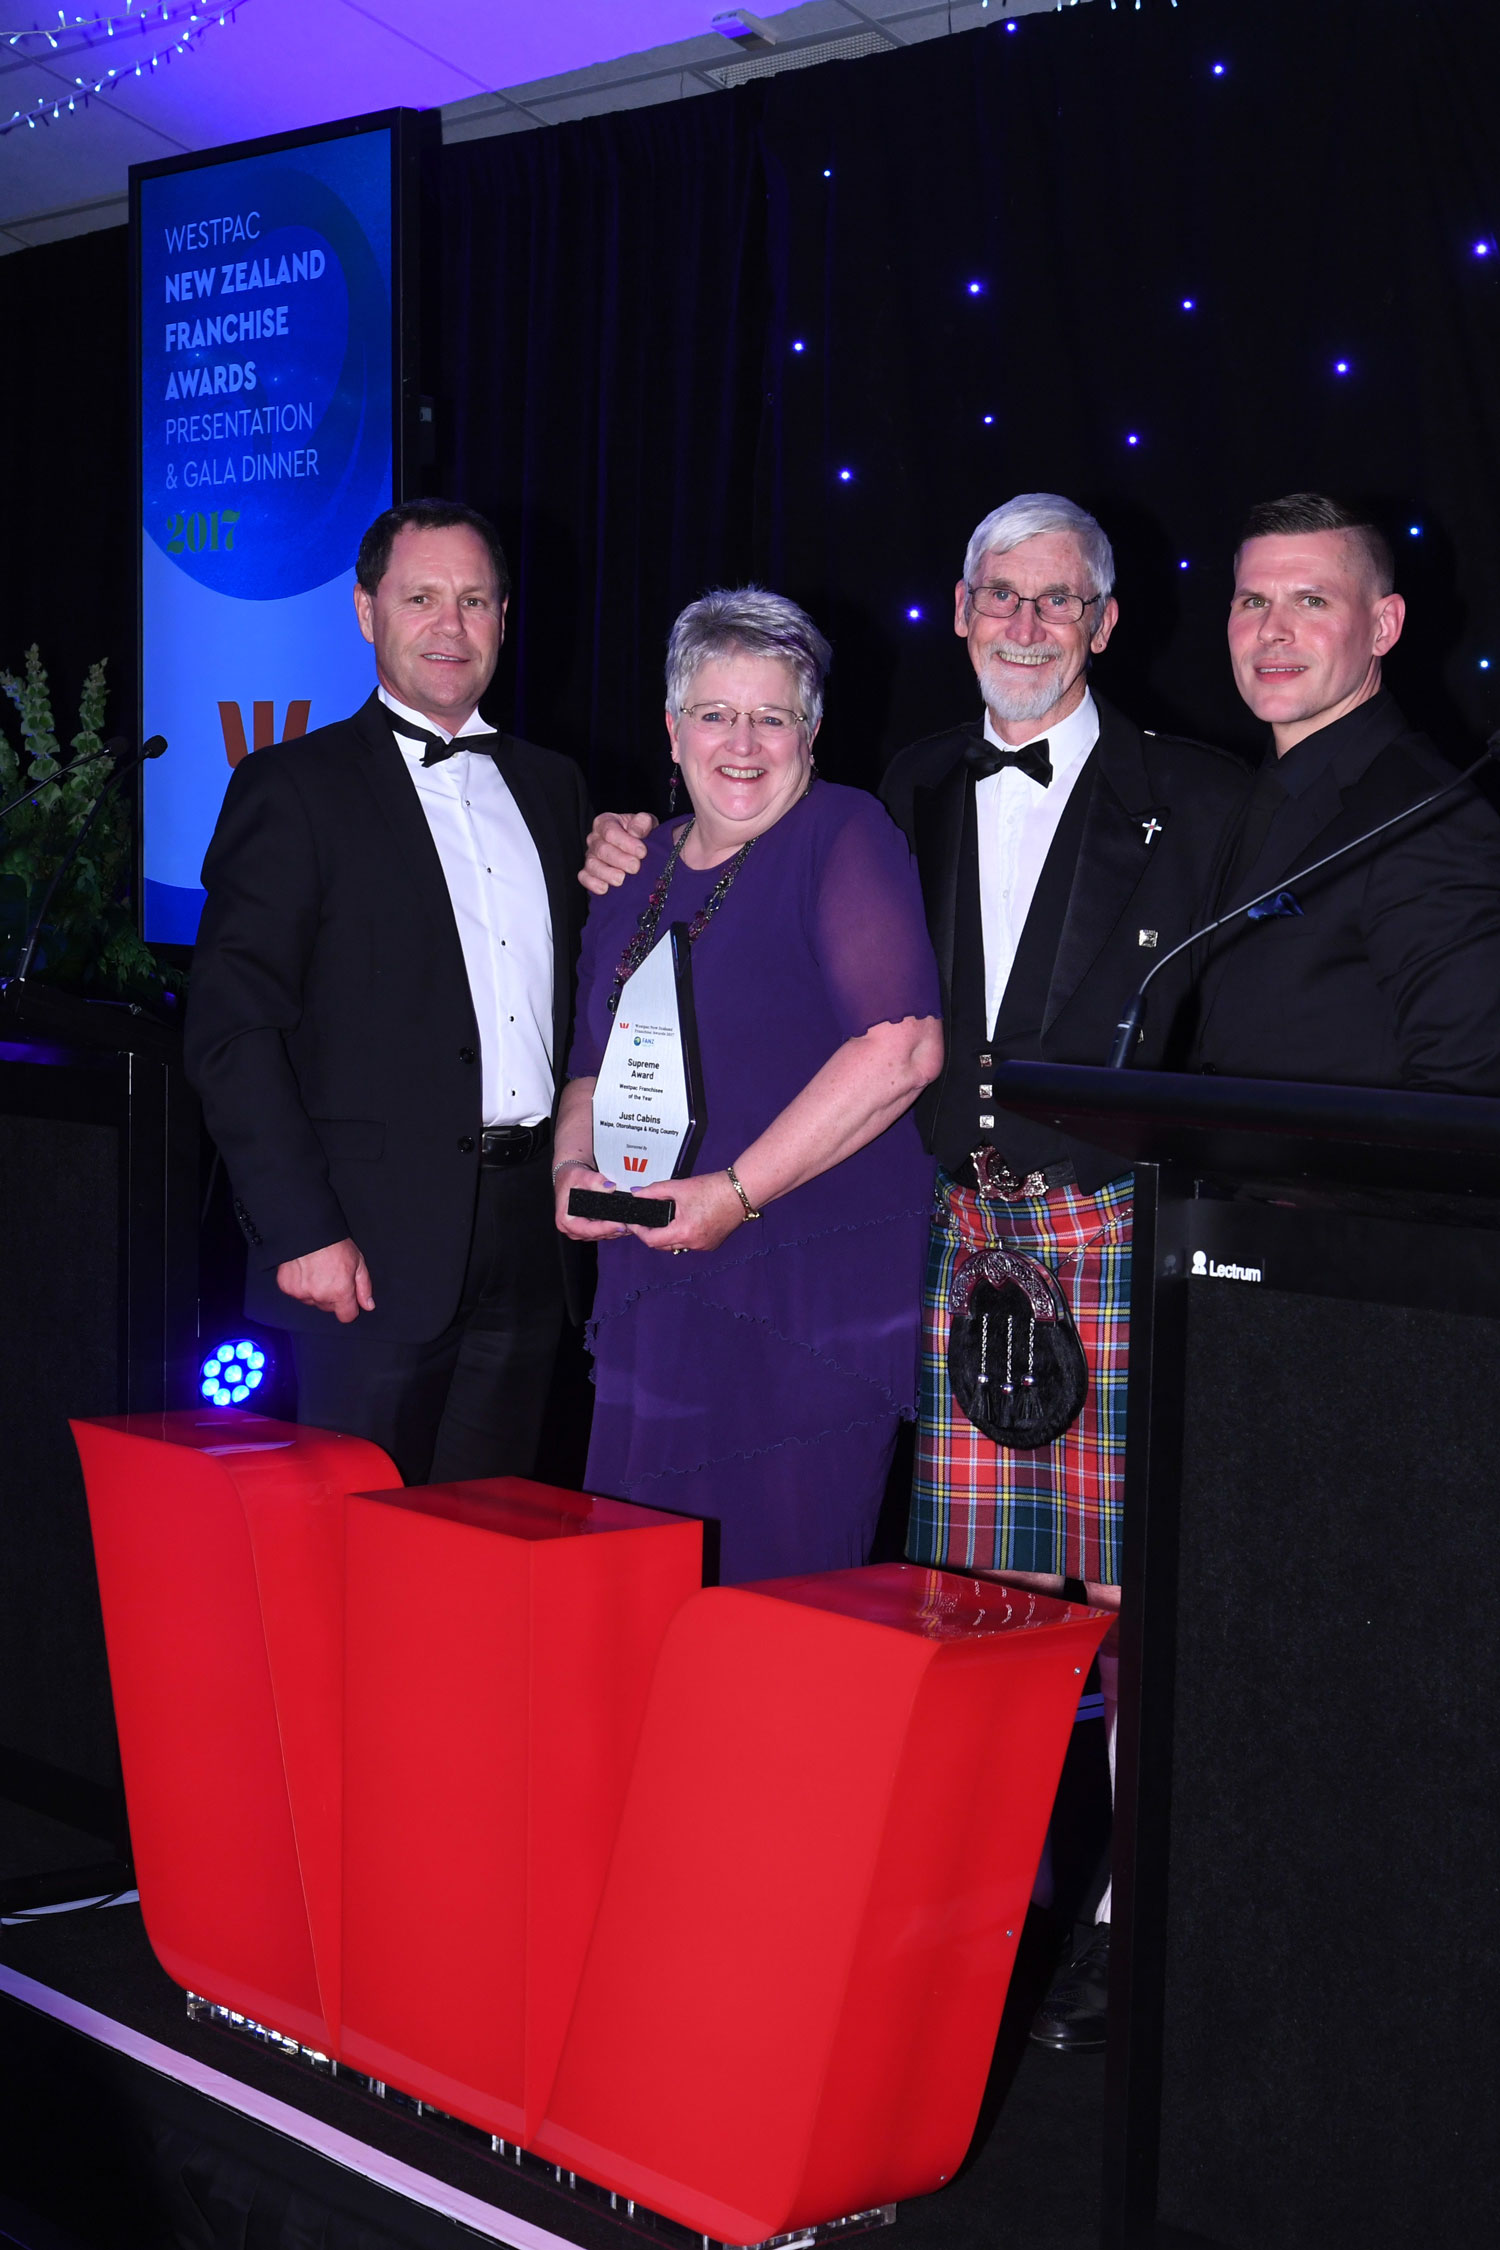 Judi & Earl McWhirter receiving their Supreme Award from Steve Atkinson, Westpac Head of Specialists Commercial (left) and FANZ Chairman Brad Jacobs. Ross is wearing the McWhirter tartan for the occasion.